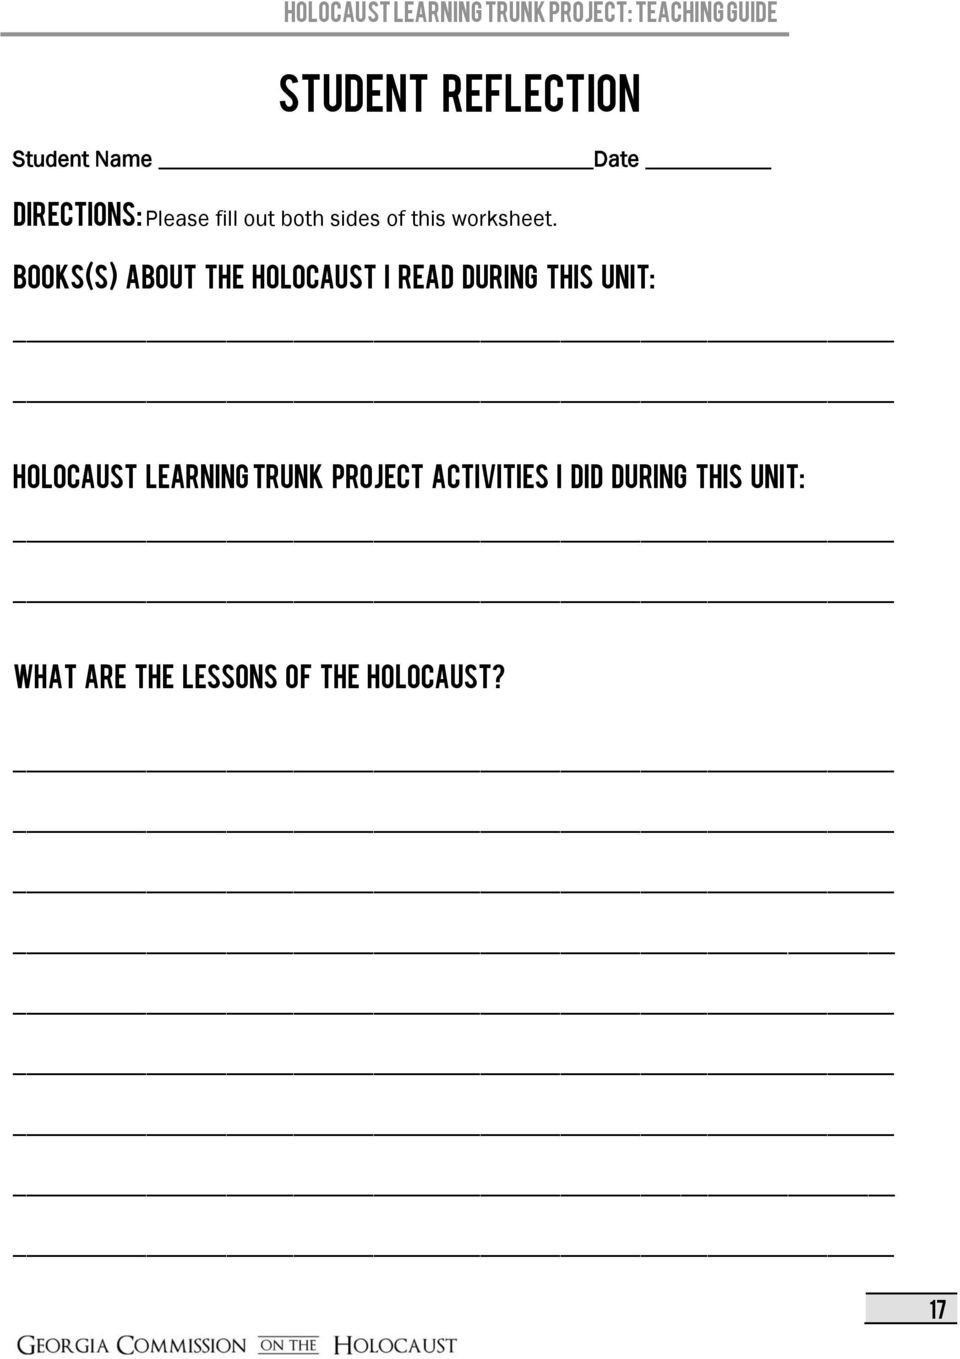 Holocaust Reading Comprehension Worksheets Holocaust Learning Trunk Project Pdf Free Download